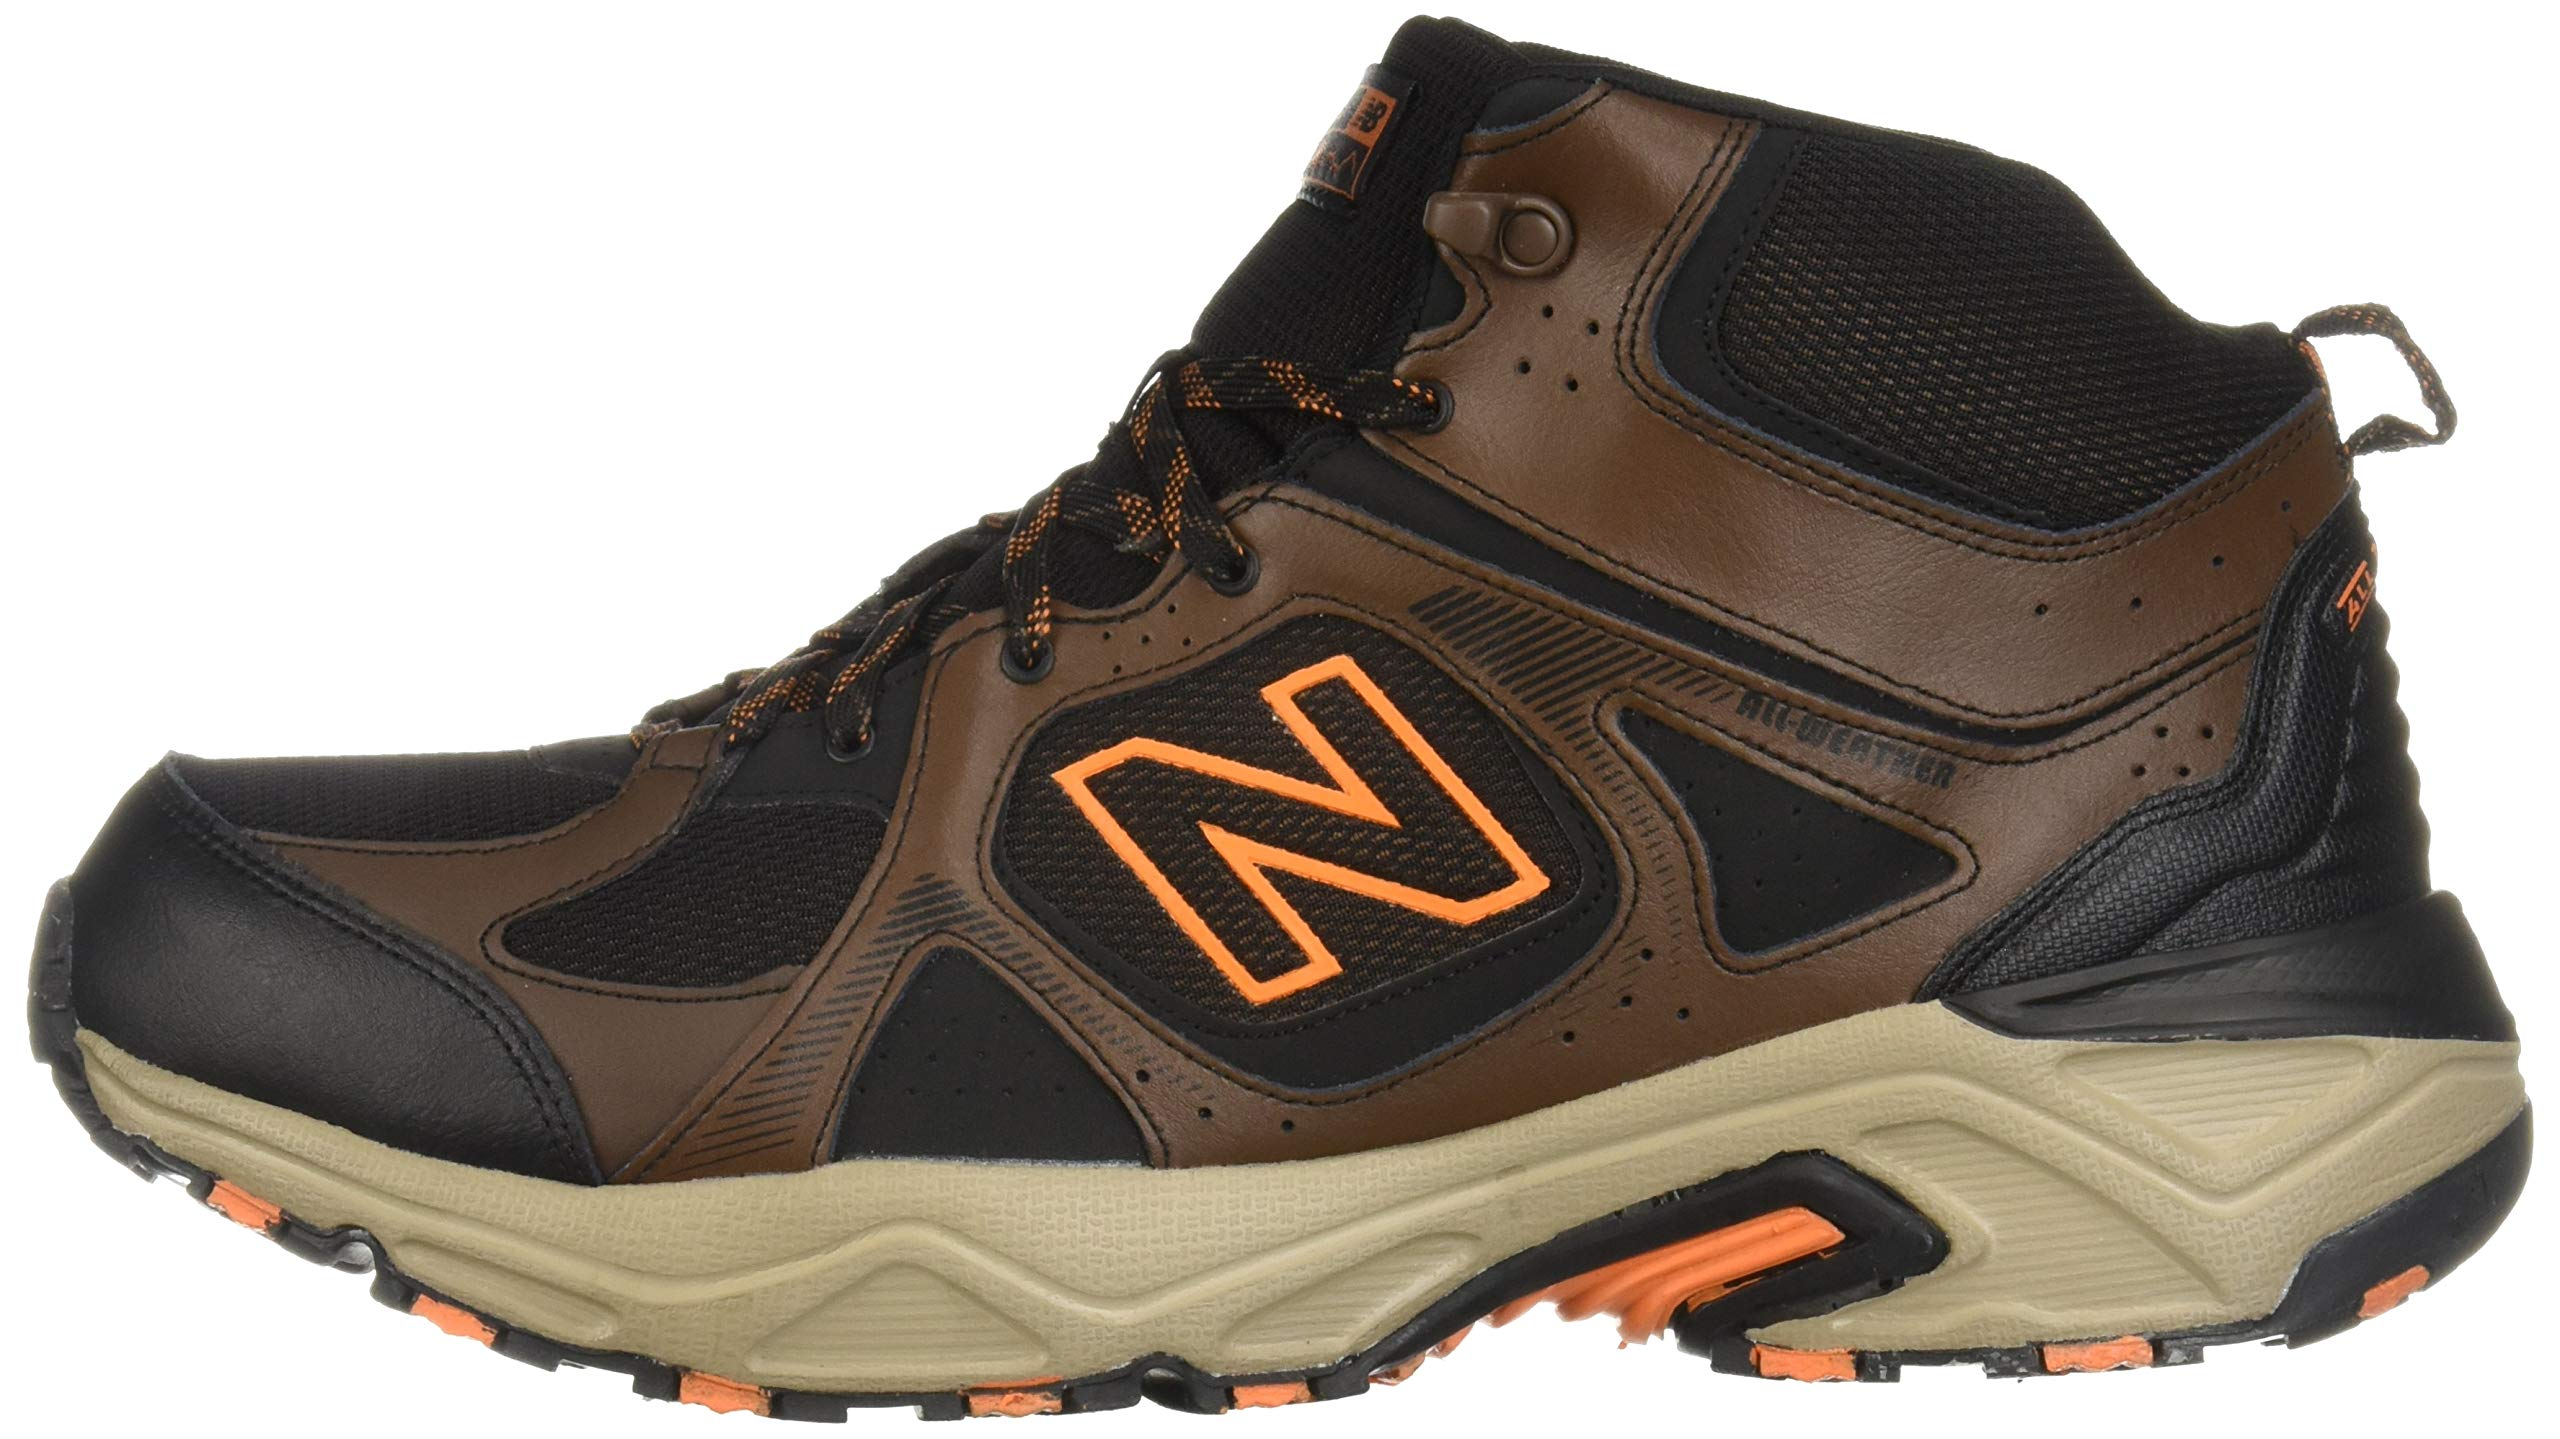 New Balance Men's 481 V3 Cushioning Trail Running Shoe Adrift/Black/Mercury 9 D US by New Balance (Image #5)